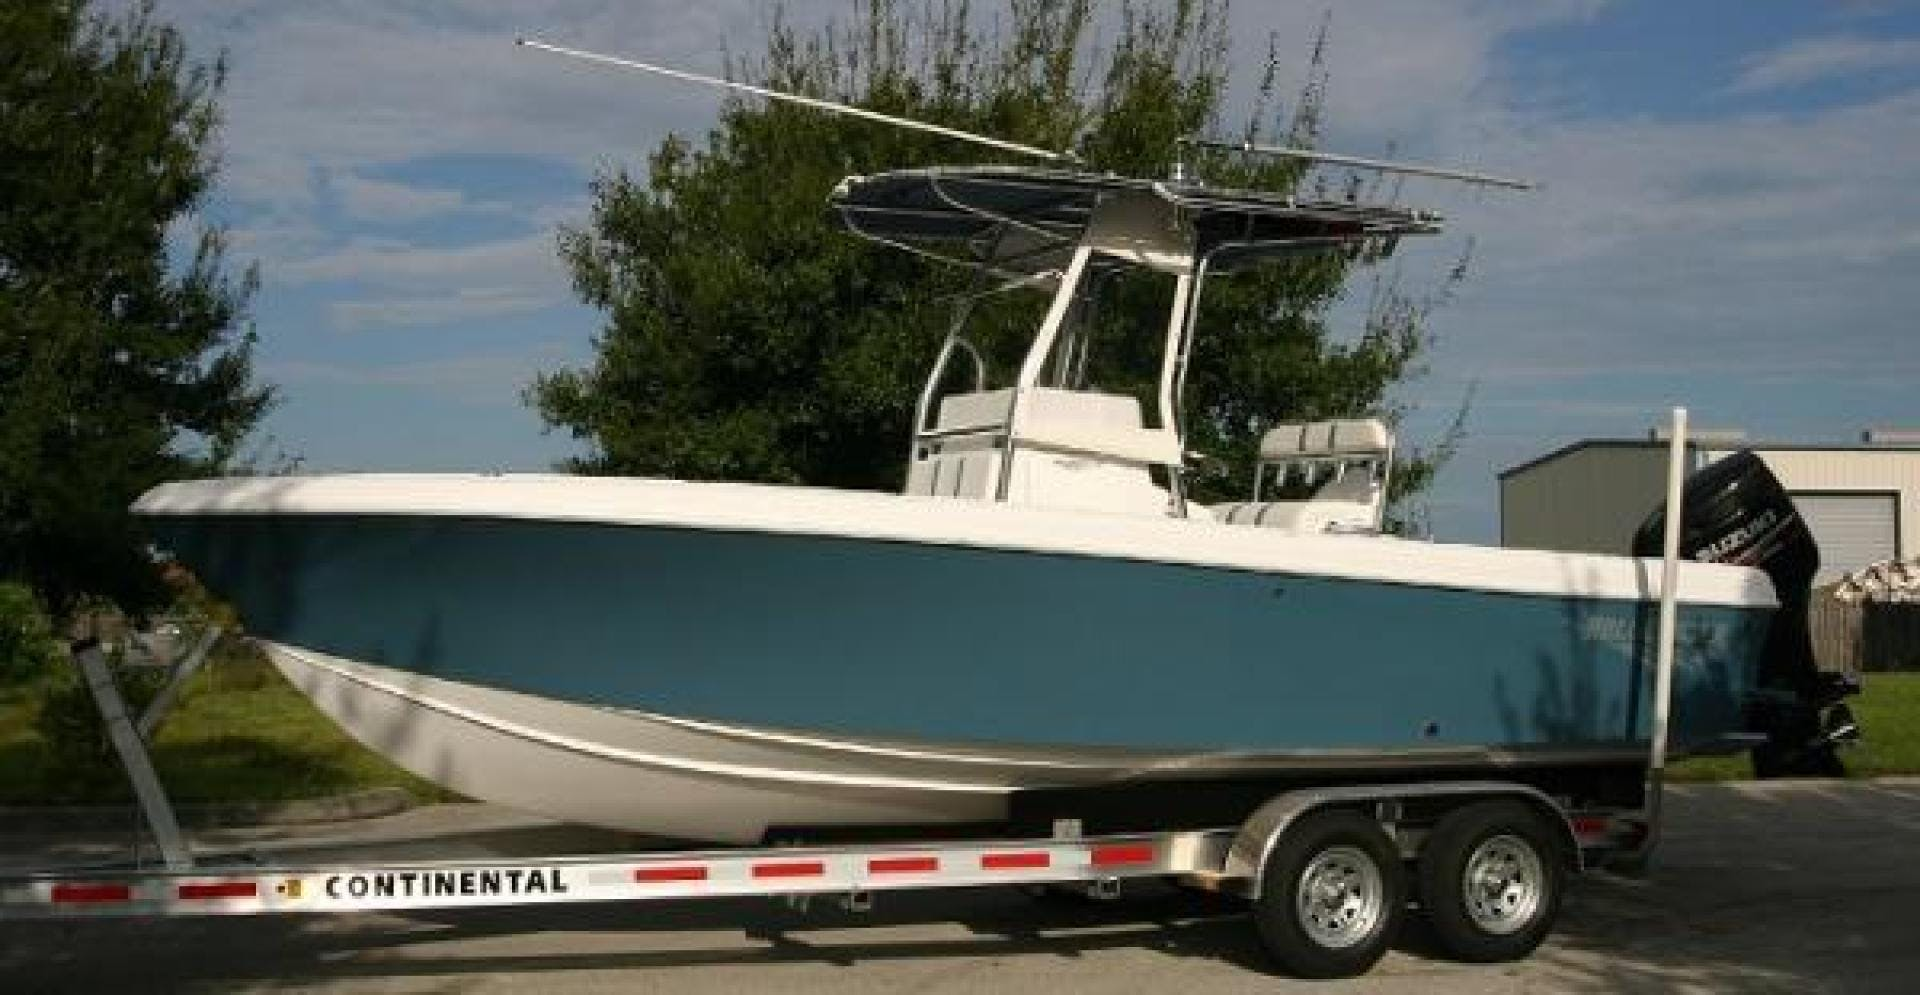 2021 Bluewater Sportfishing 22' 23t Bluewater Sportfishing 23t | Picture 4 of 7